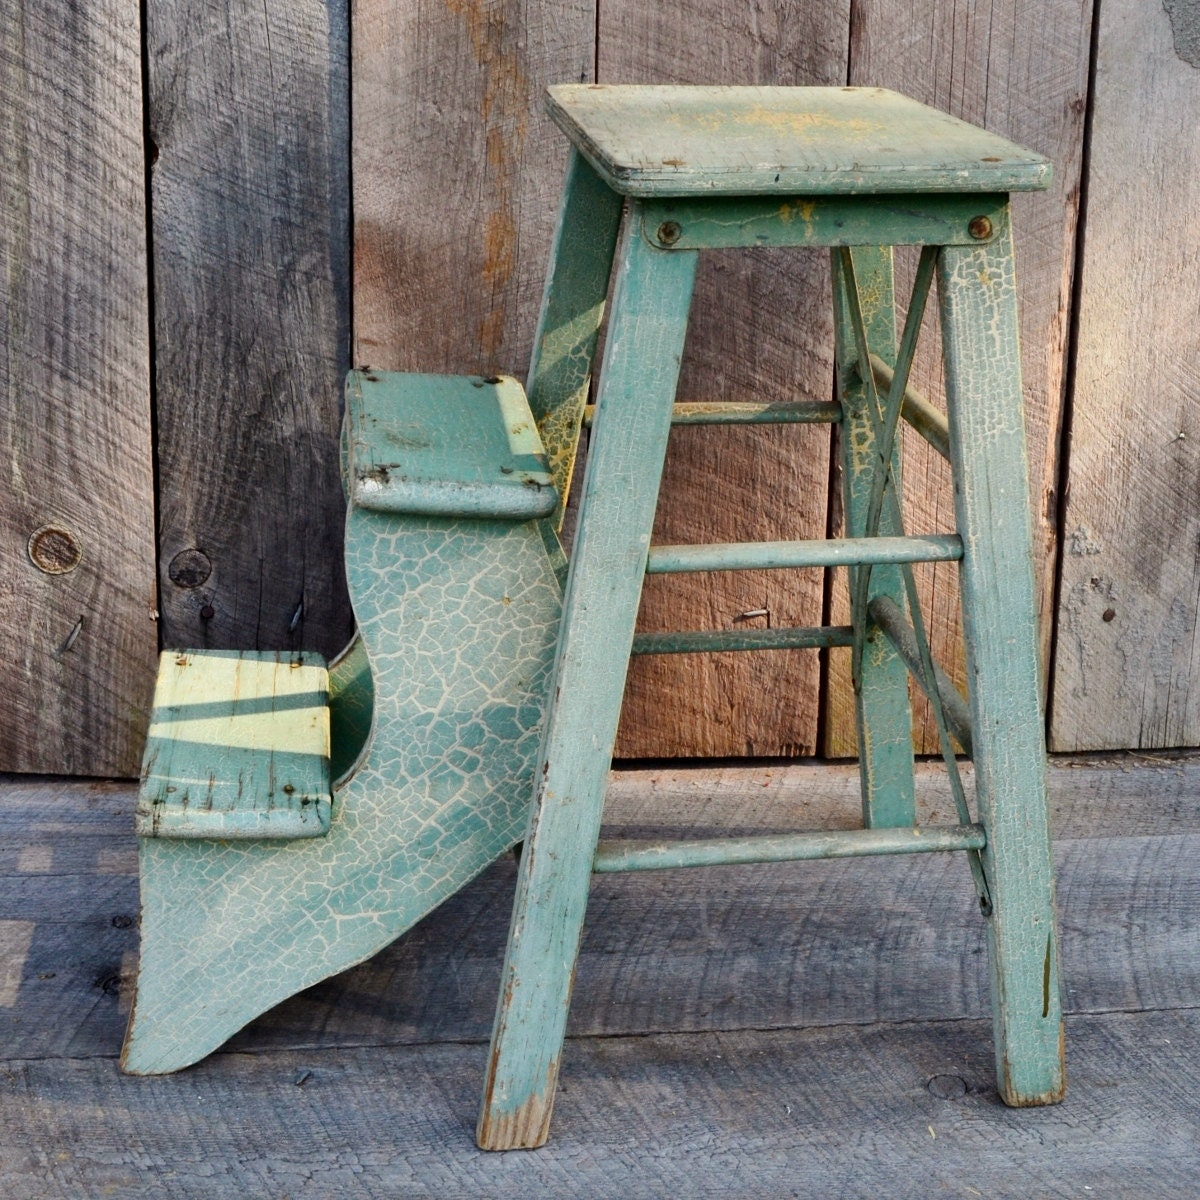 Very Impressive portraiture of Light Green Step Stool Wooden Fold Out by RelicsAndRhinestones with #79614C & Wooden Stool With Fold Out Steps | kashiori.com Wooden Sofa Chair ... islam-shia.org